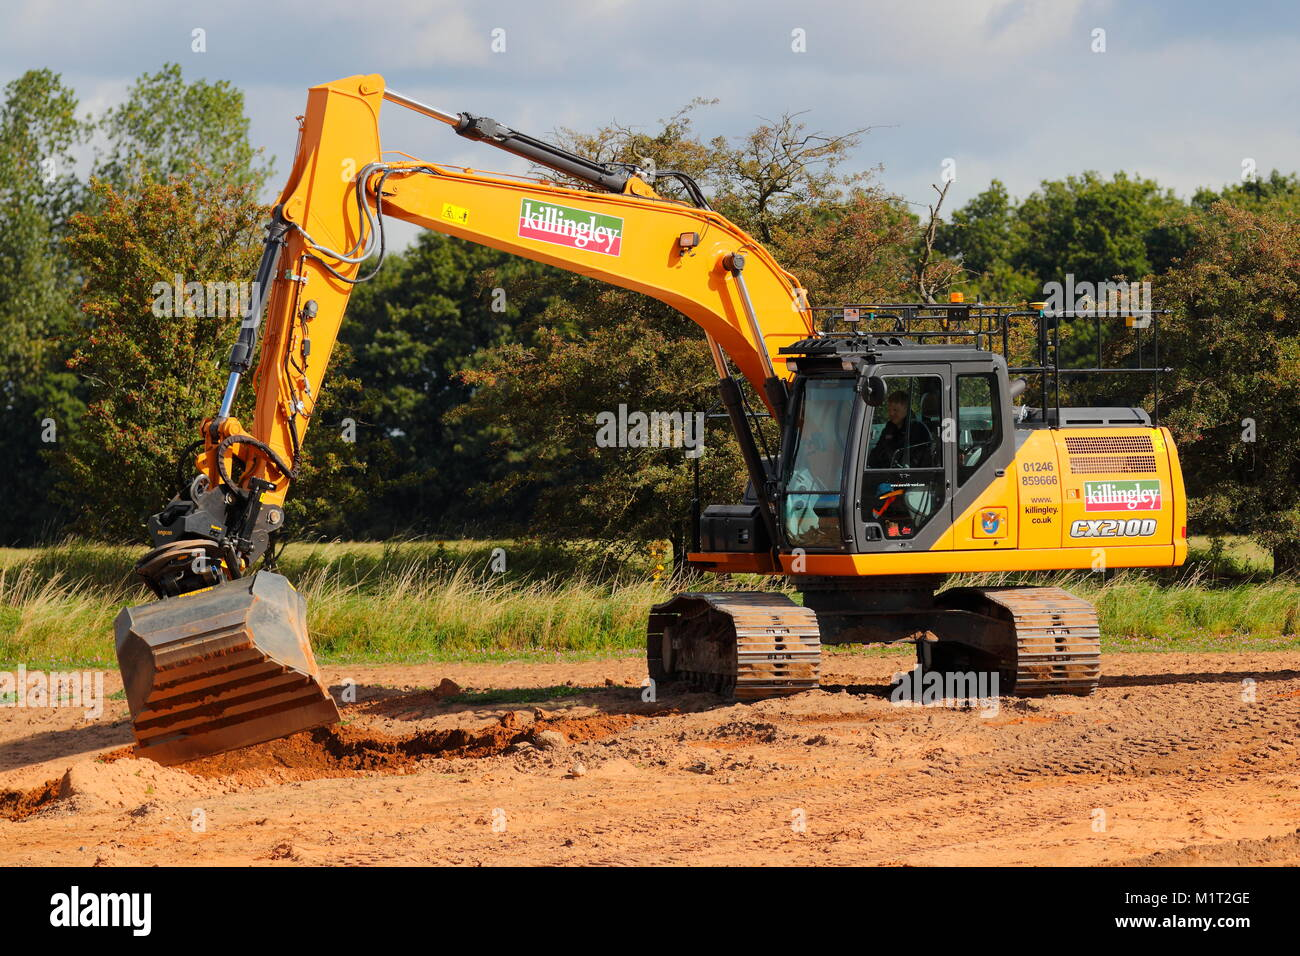 An excavator trials a new rotating bucket attachment on a new section of road being built in Doncaster which leads - Stock Image